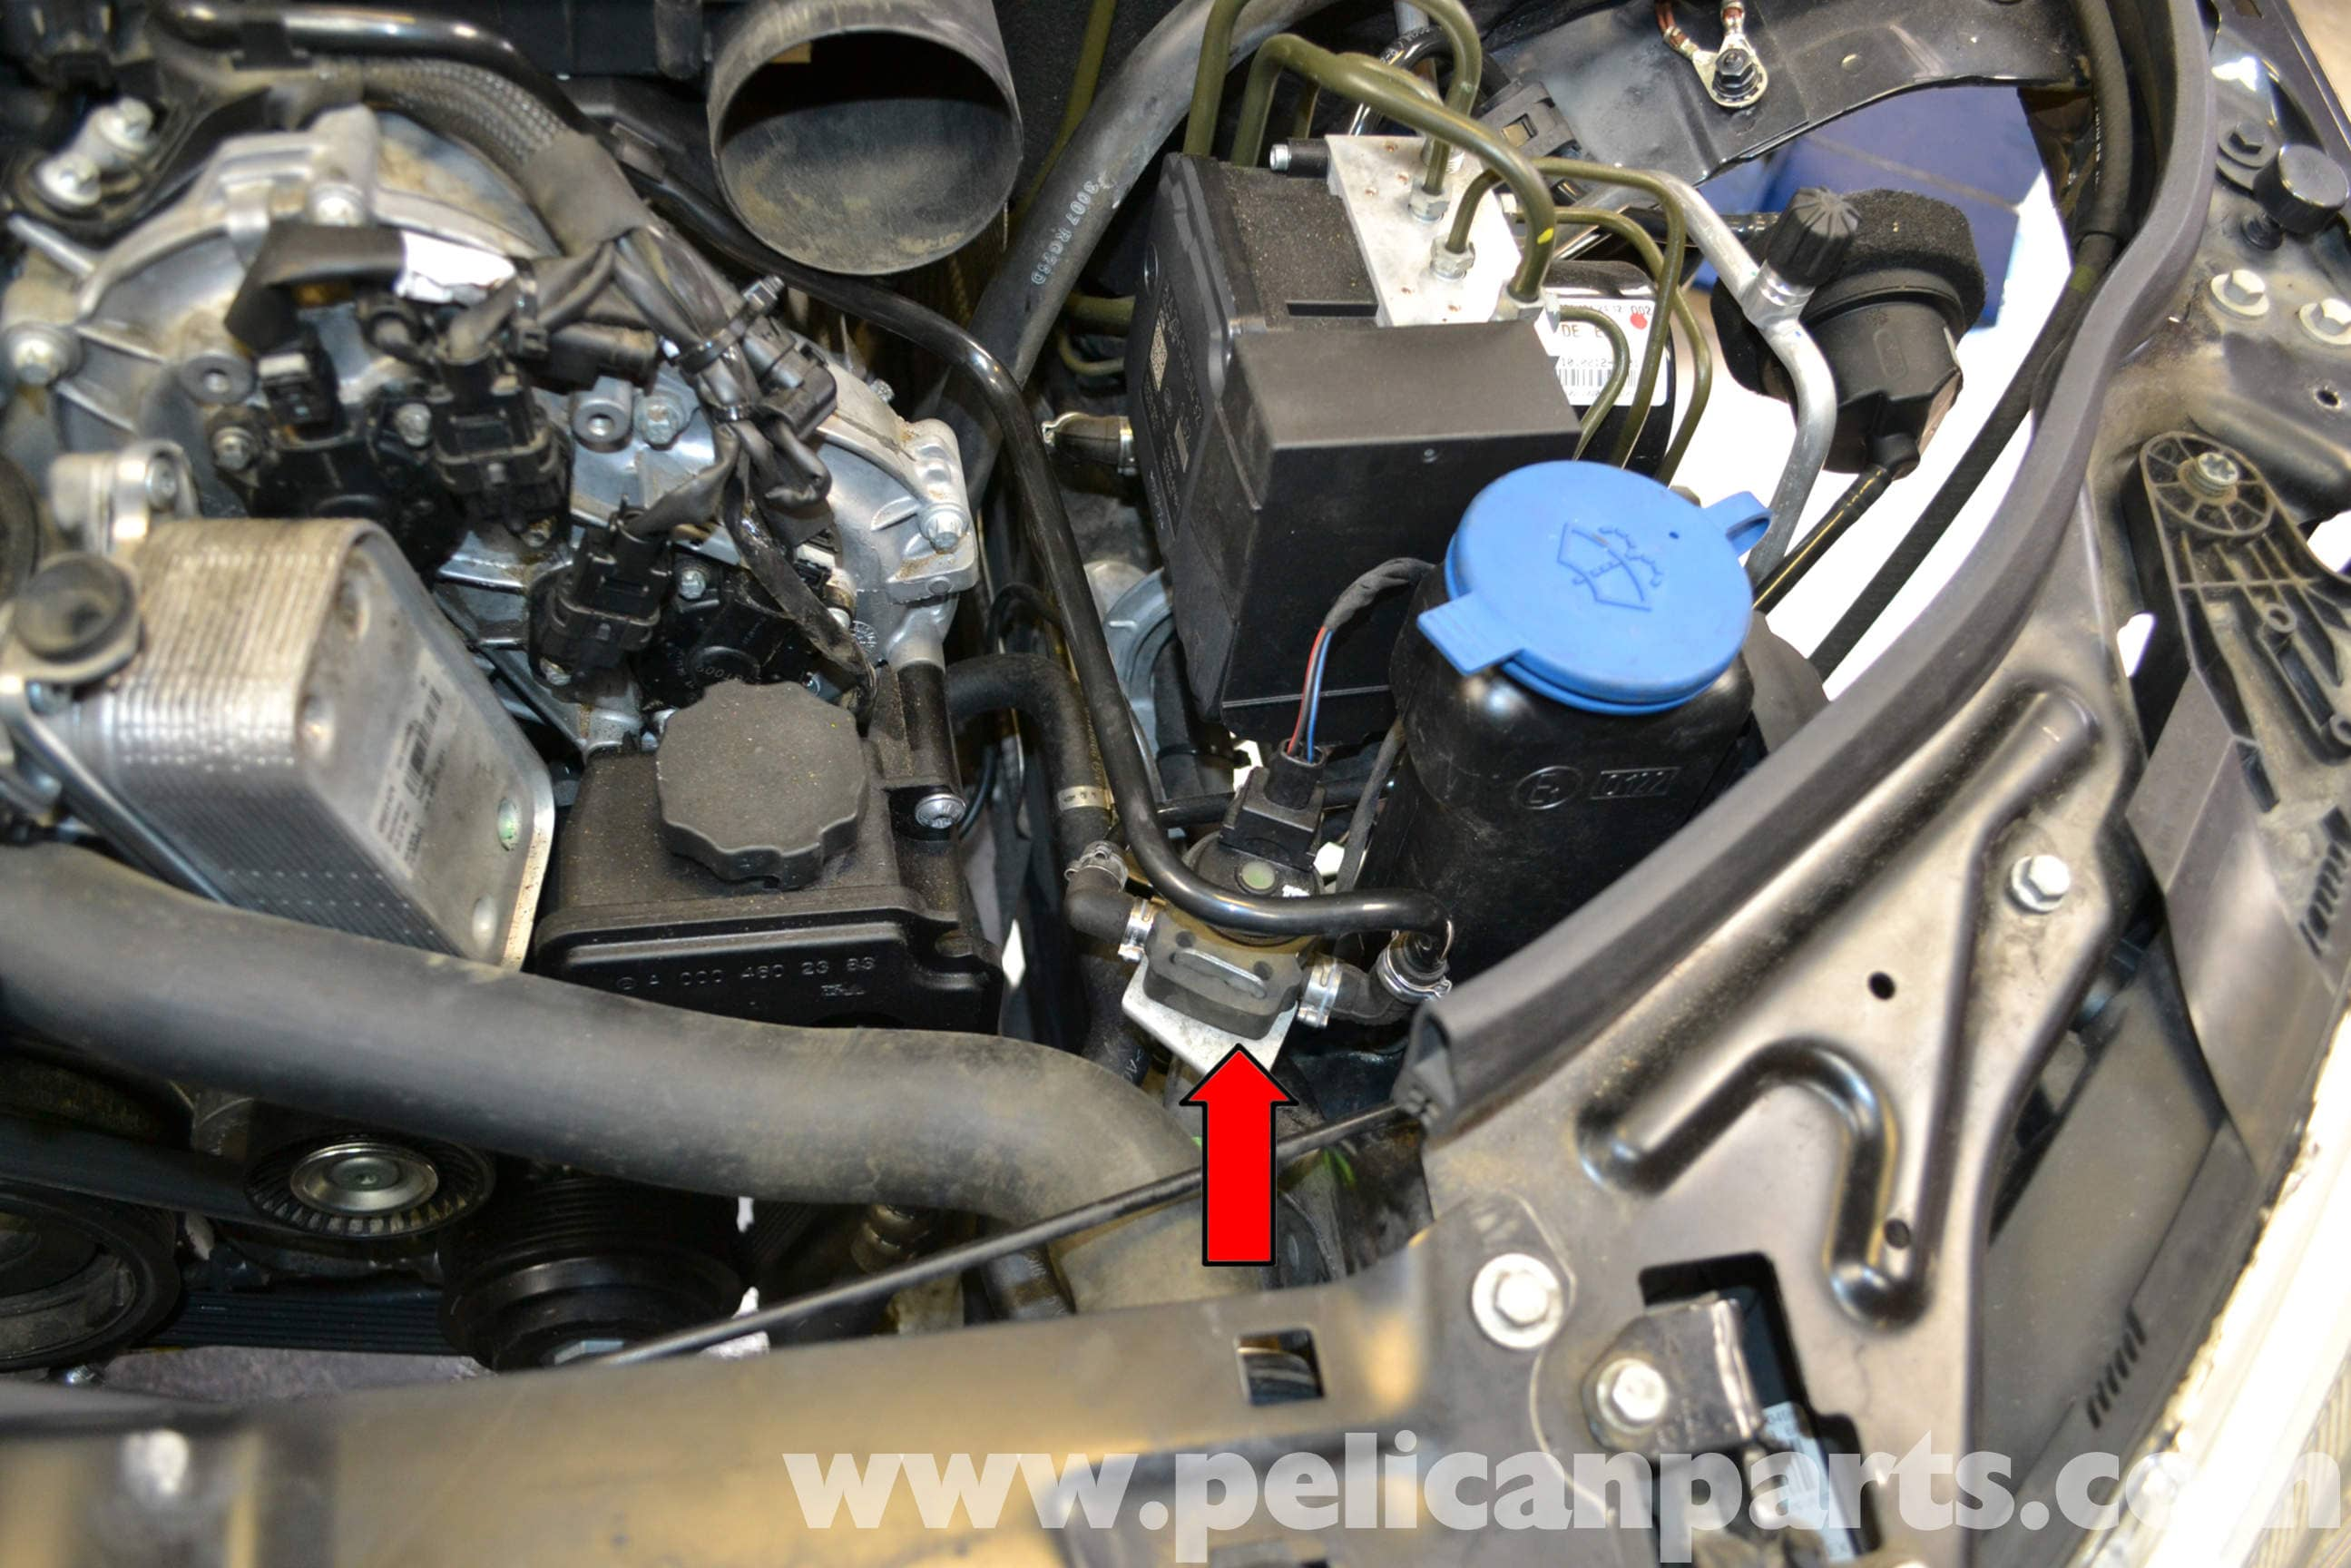 mercedes-benz w204 purge valve replacement